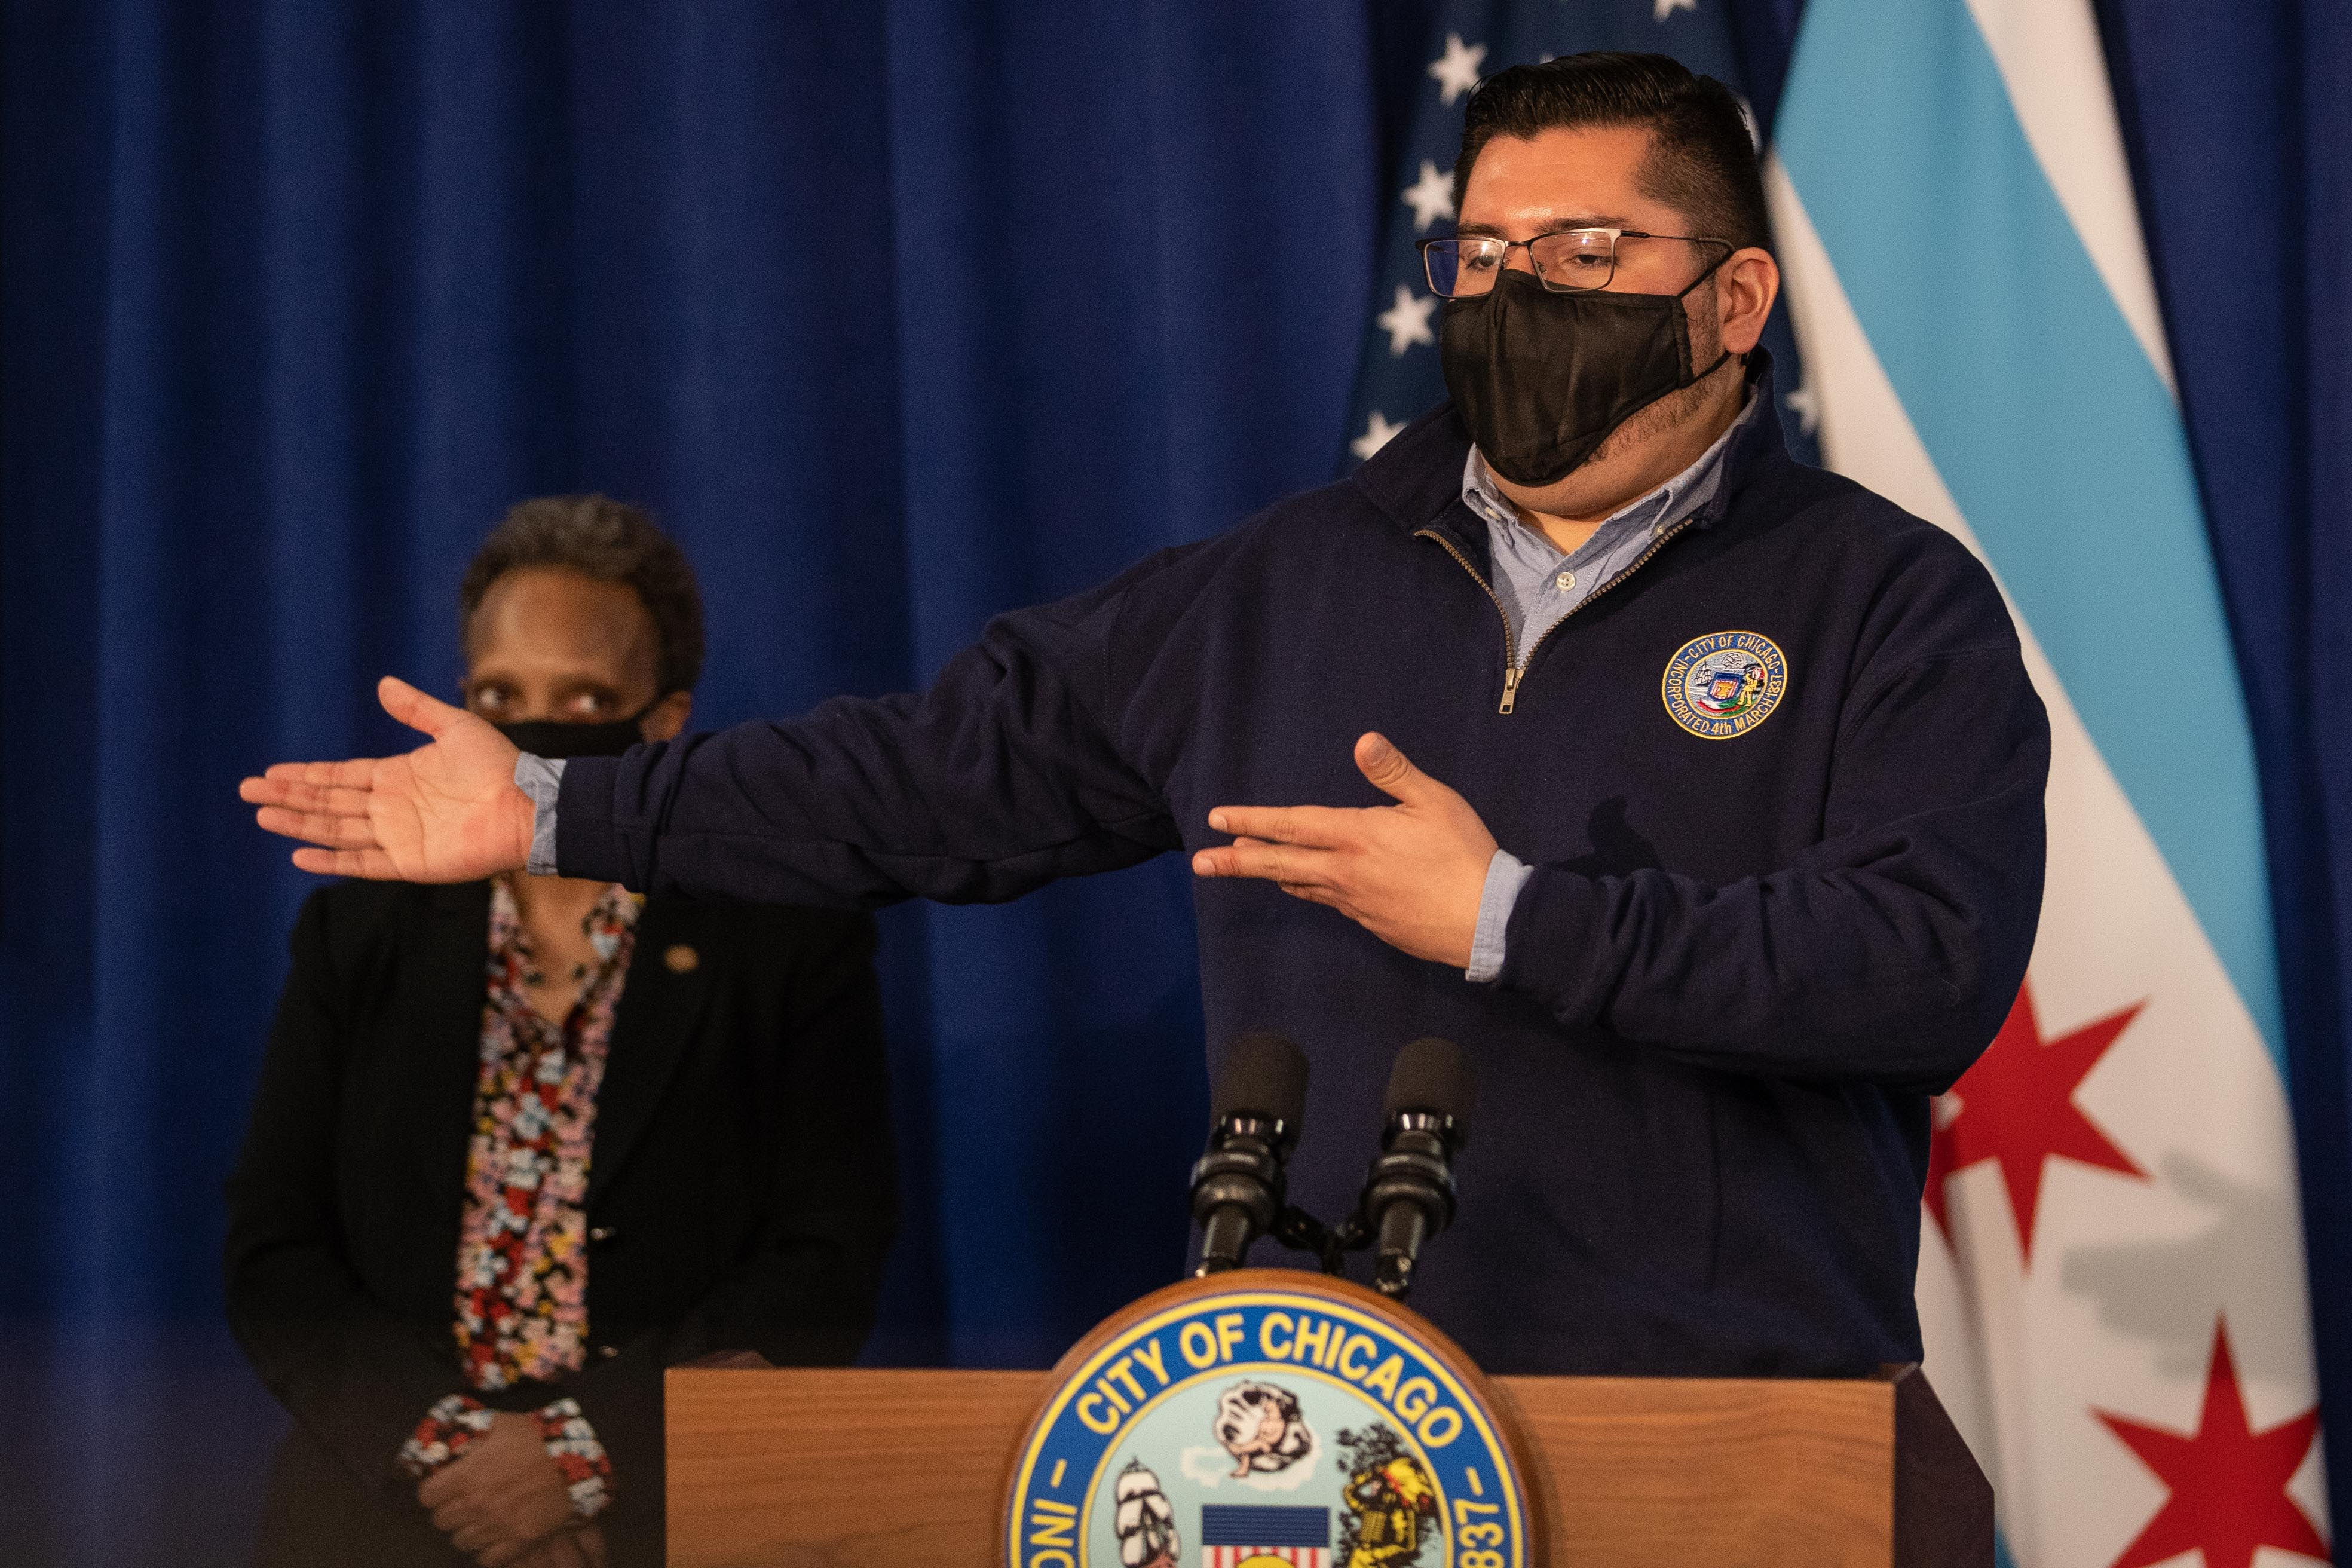 Ald. Carlos Ramirez-Rosa (35th) speaks during a press conference at City Hall in the Loop, Tuesday morning, Feb. 23, 2021, where Chicago Mayor Lori Lightfoot signed the Welcoming City Ordinance.